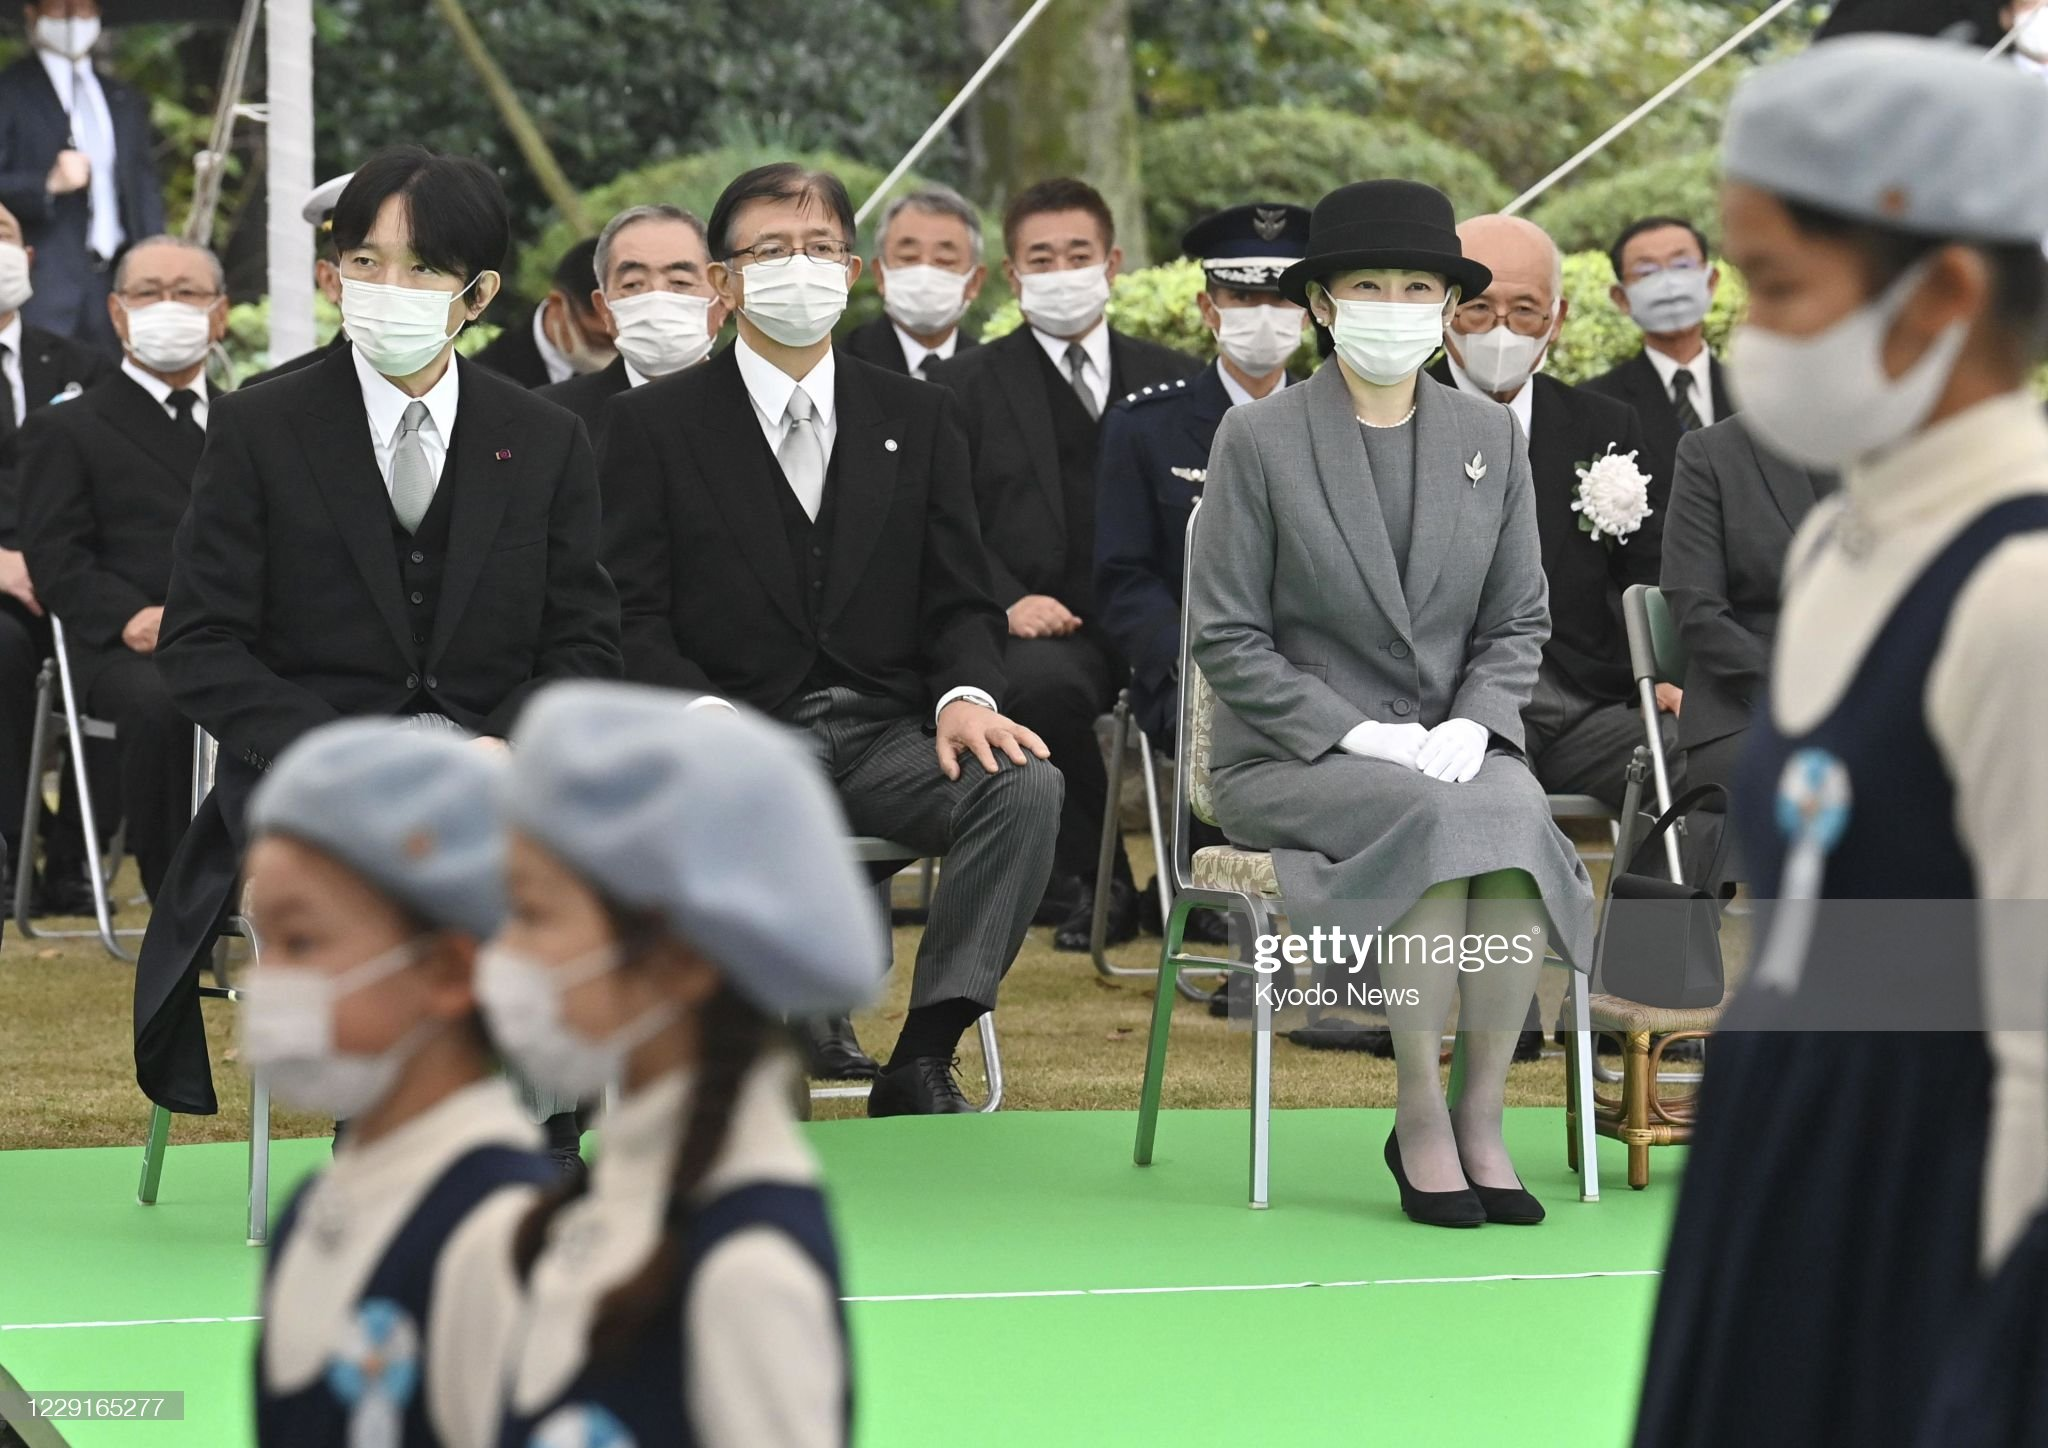 japanese-crown-prince-fumihito-and-his-wife-princess-kiko-attend-an-picture-id1229165277